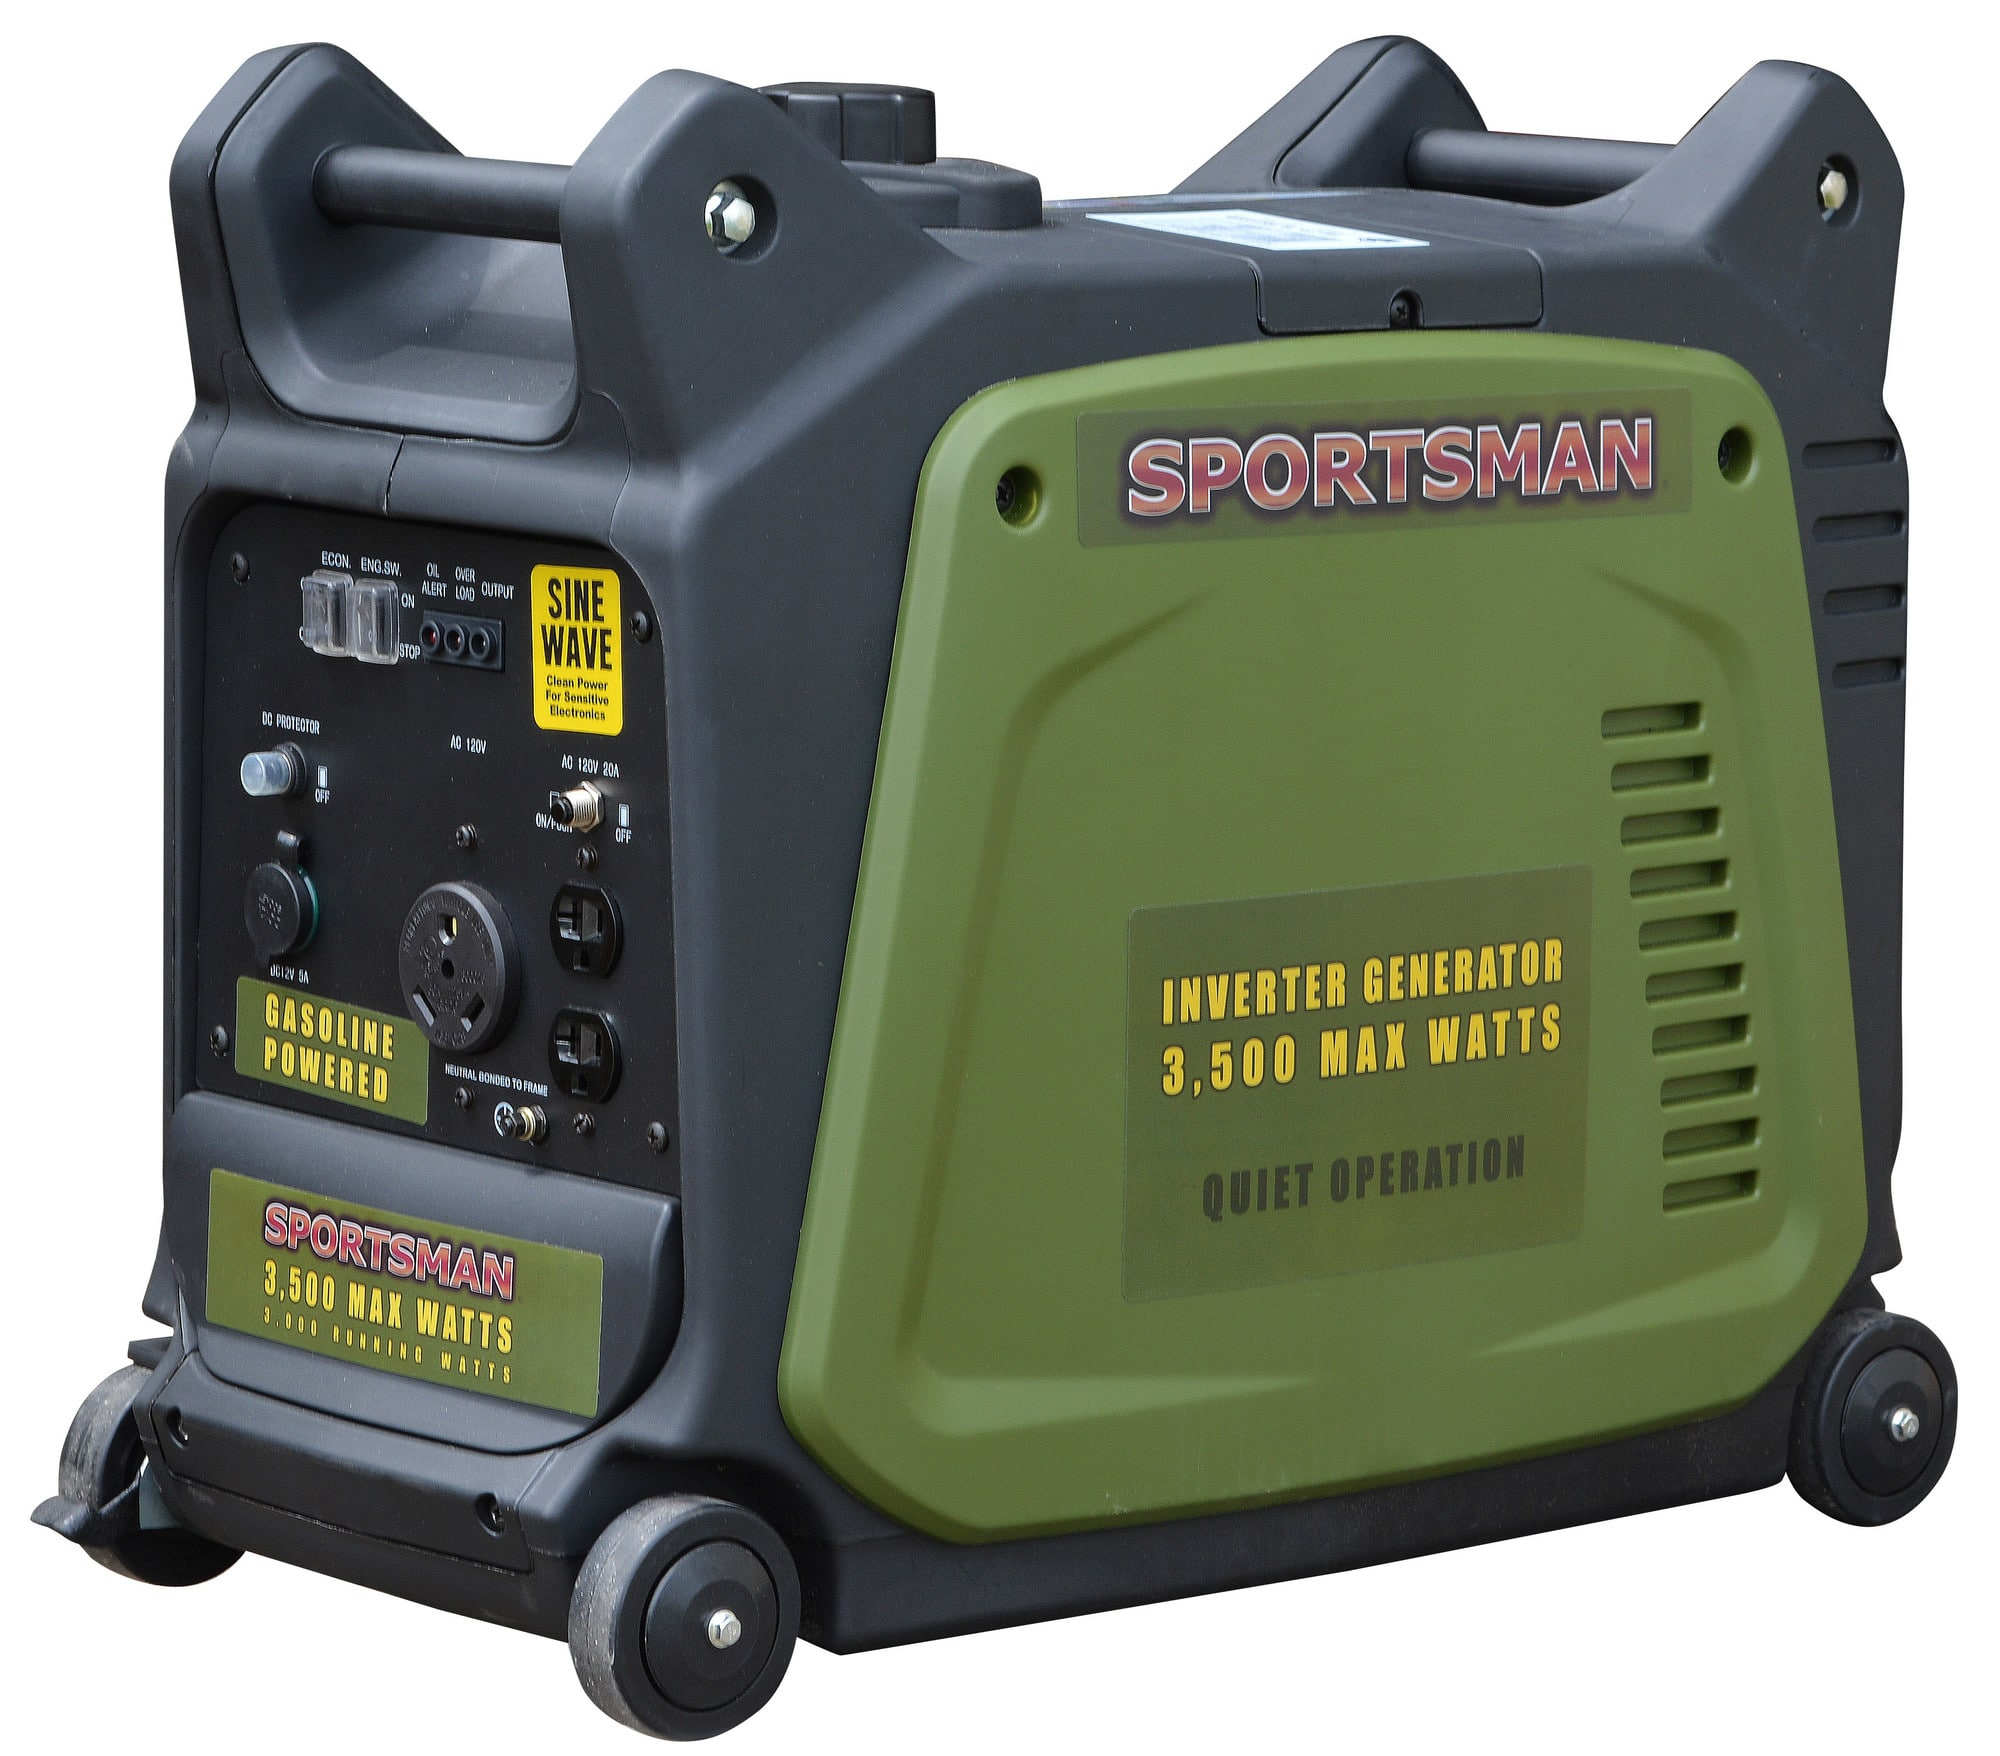 ***DEAD*** Wayfair.com - Sportsman 3500-Watt Gasoline Powered Digital Inverter Generator  - $160 w/ free shipping